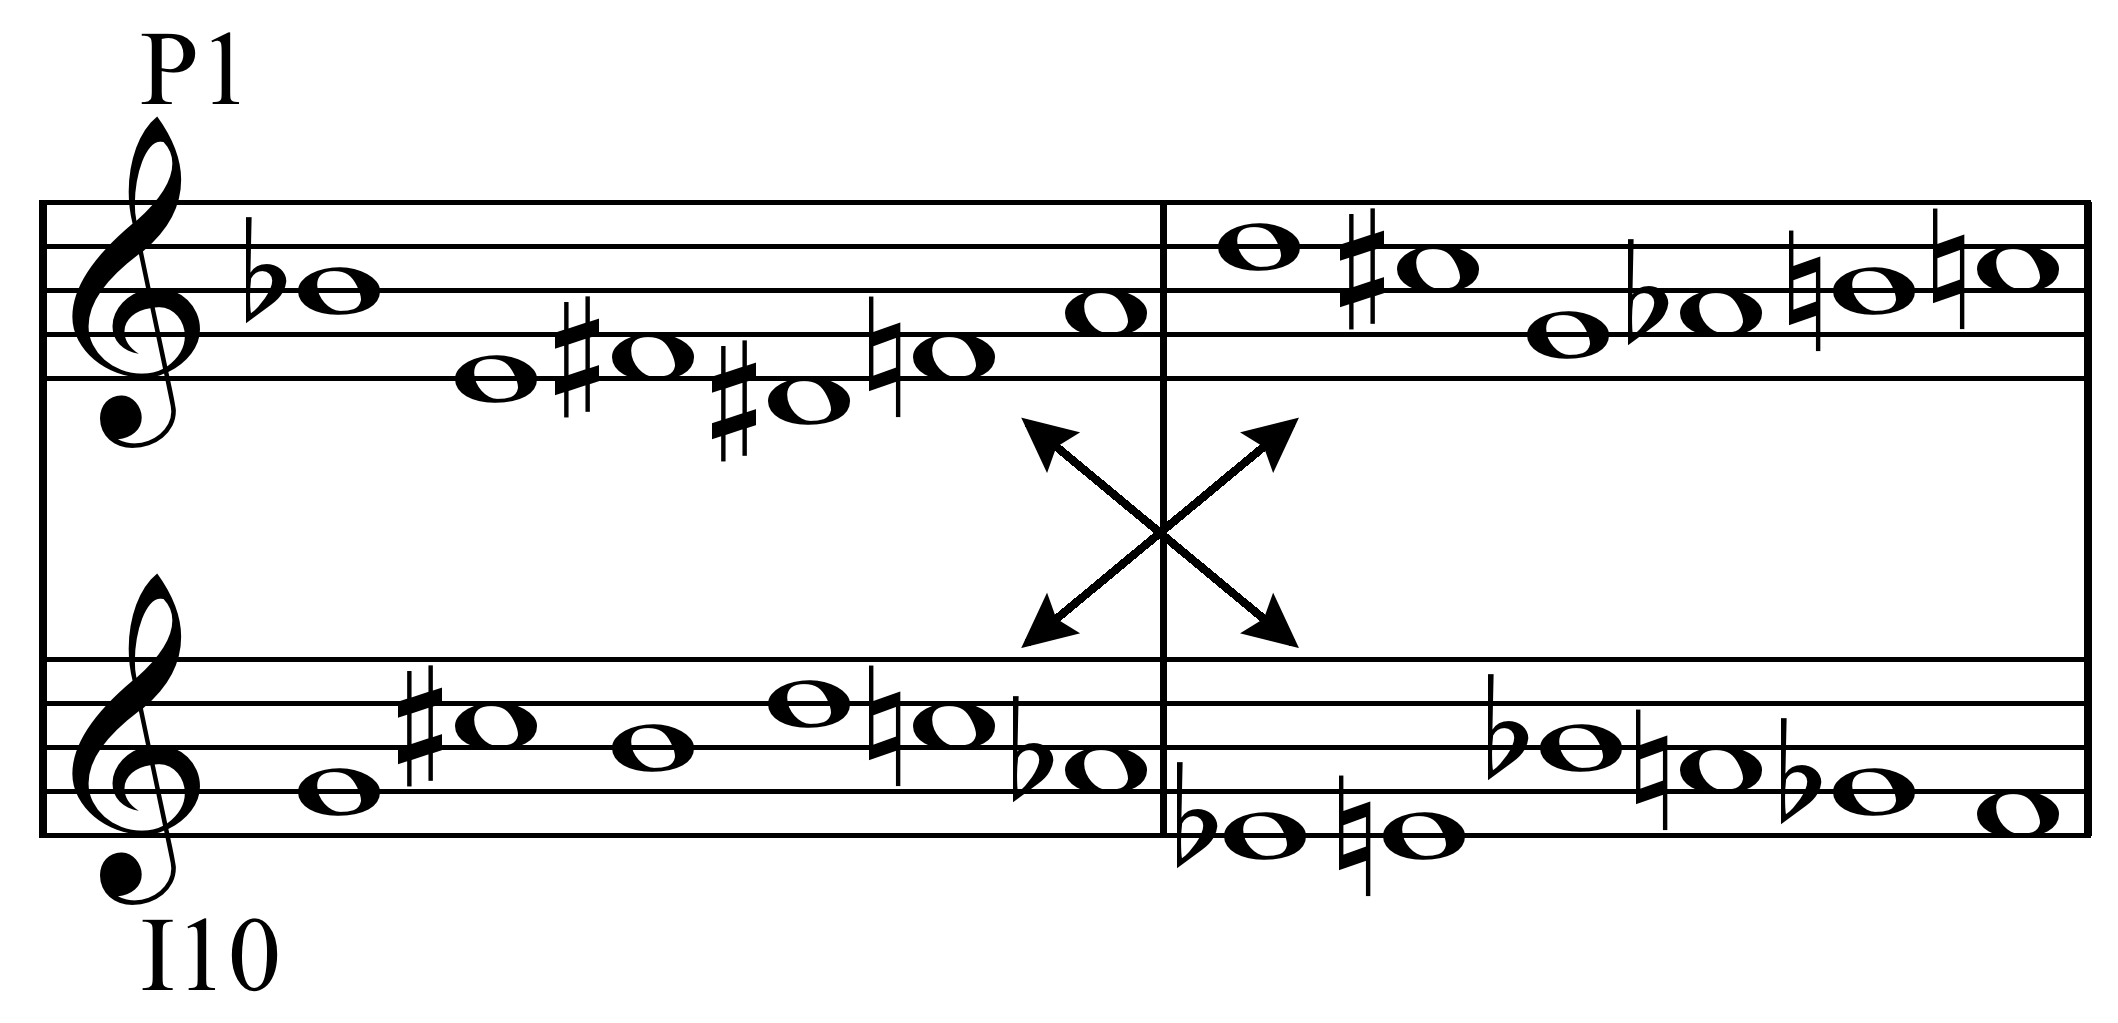 Schoenberg - Variations for Orchestra op. 31 tone row.png